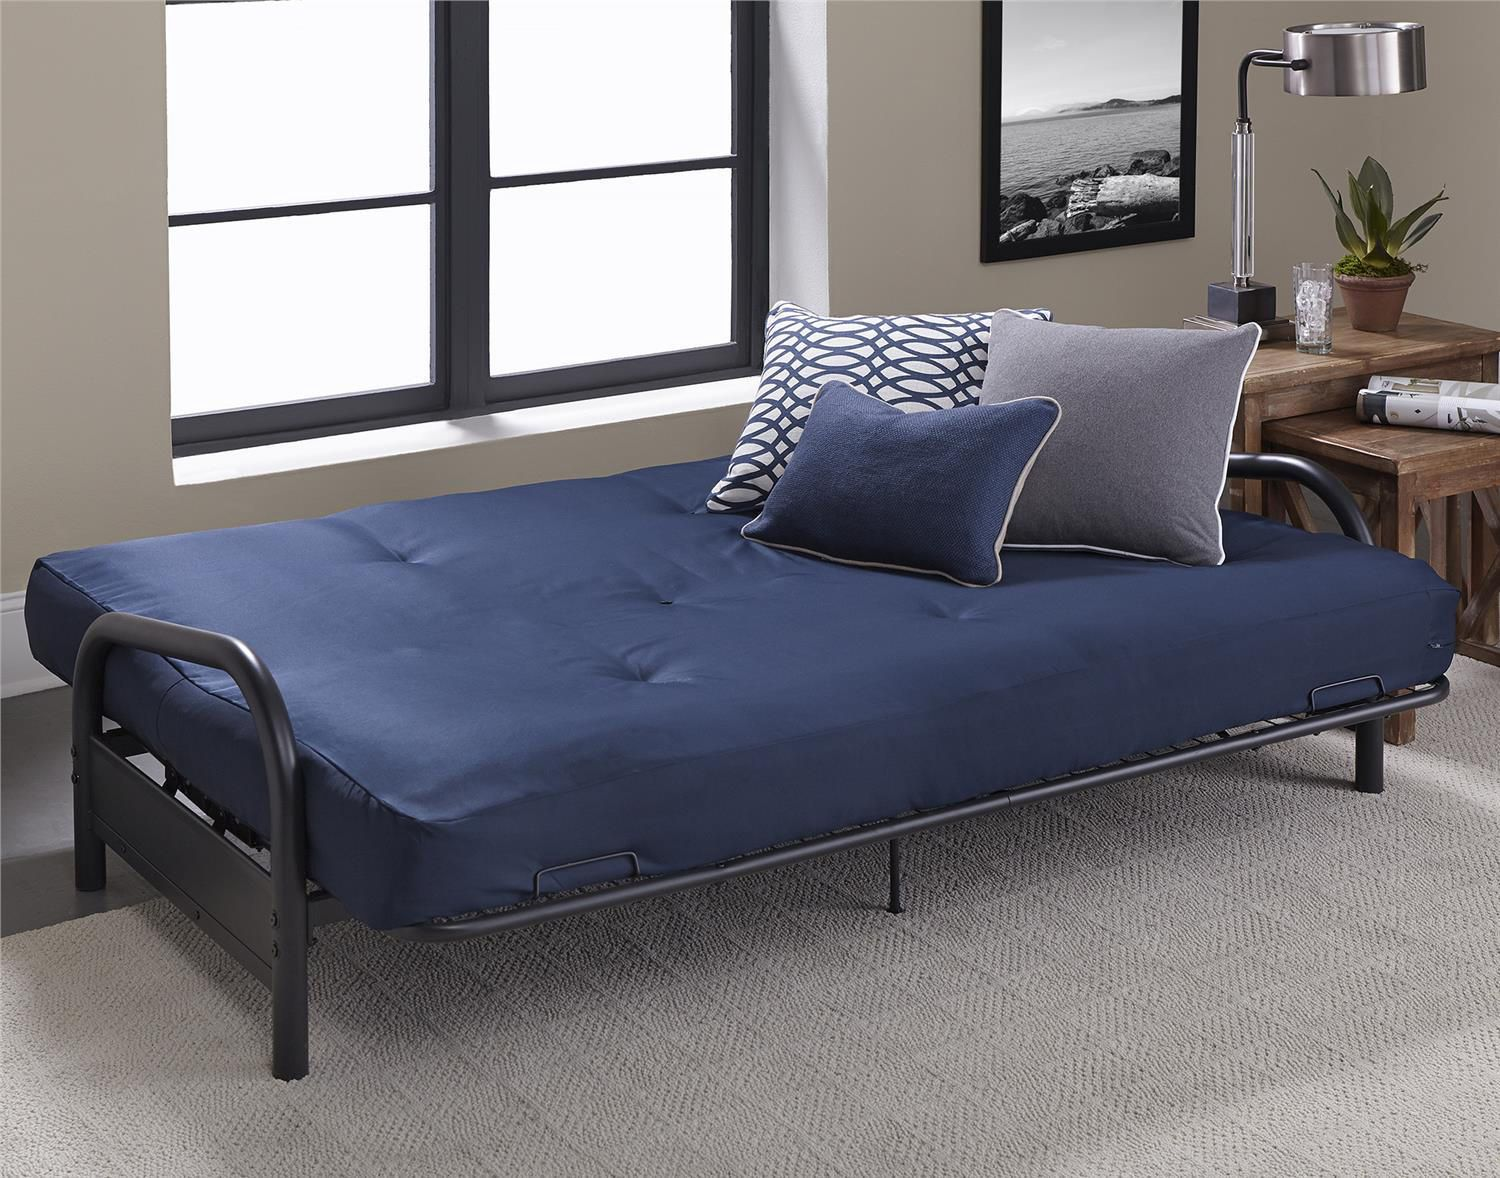 Popular Cheap Futon Mattress Ideas